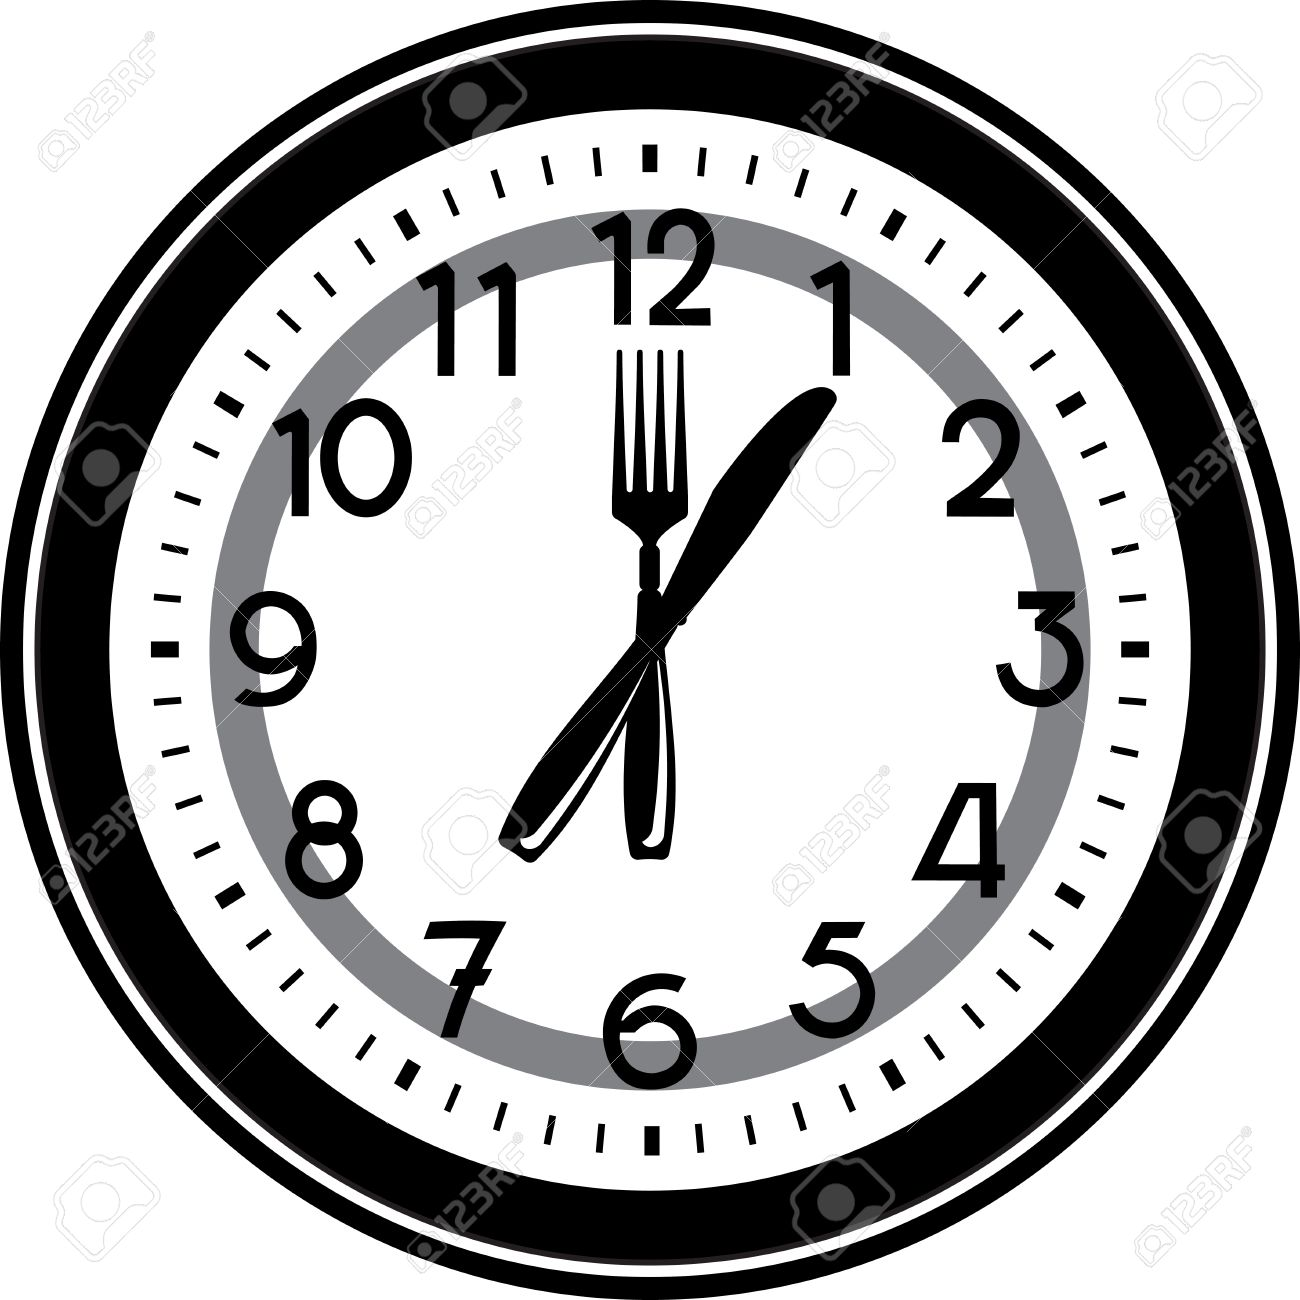 Clock Display Lunch Time At 1 O'clock Royalty Free Cliparts ...